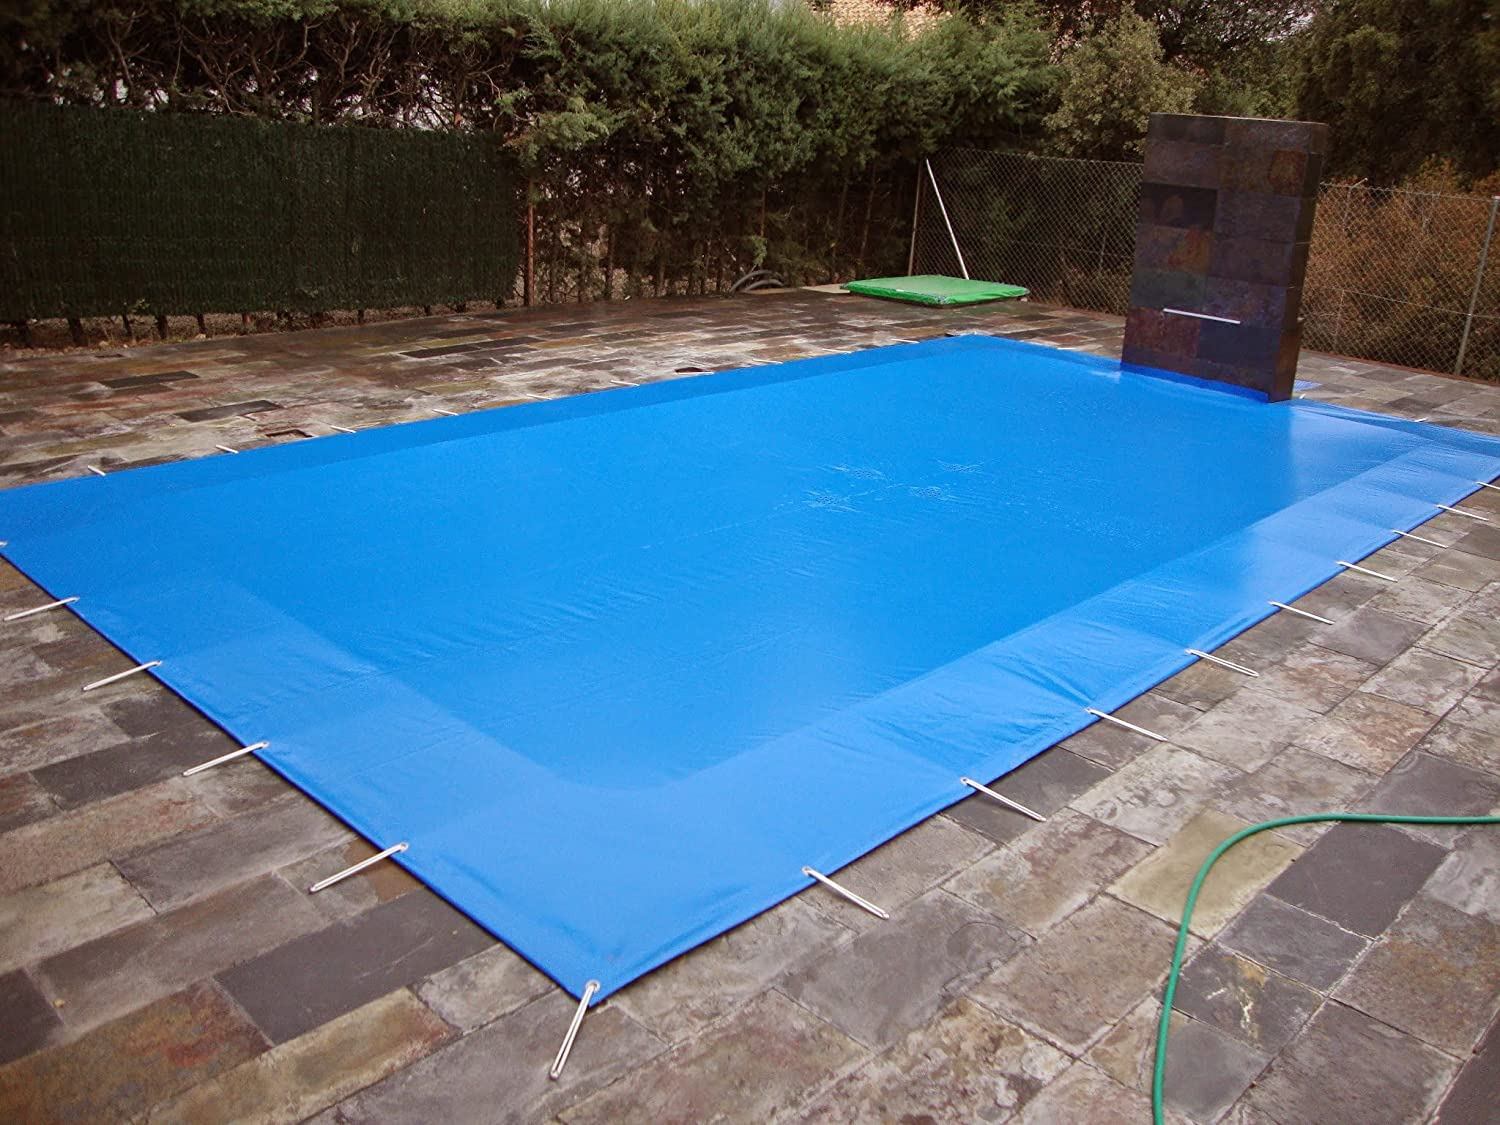 Winter-Abdeckung Für Pool 3 x 6 Meter International Cover Pool